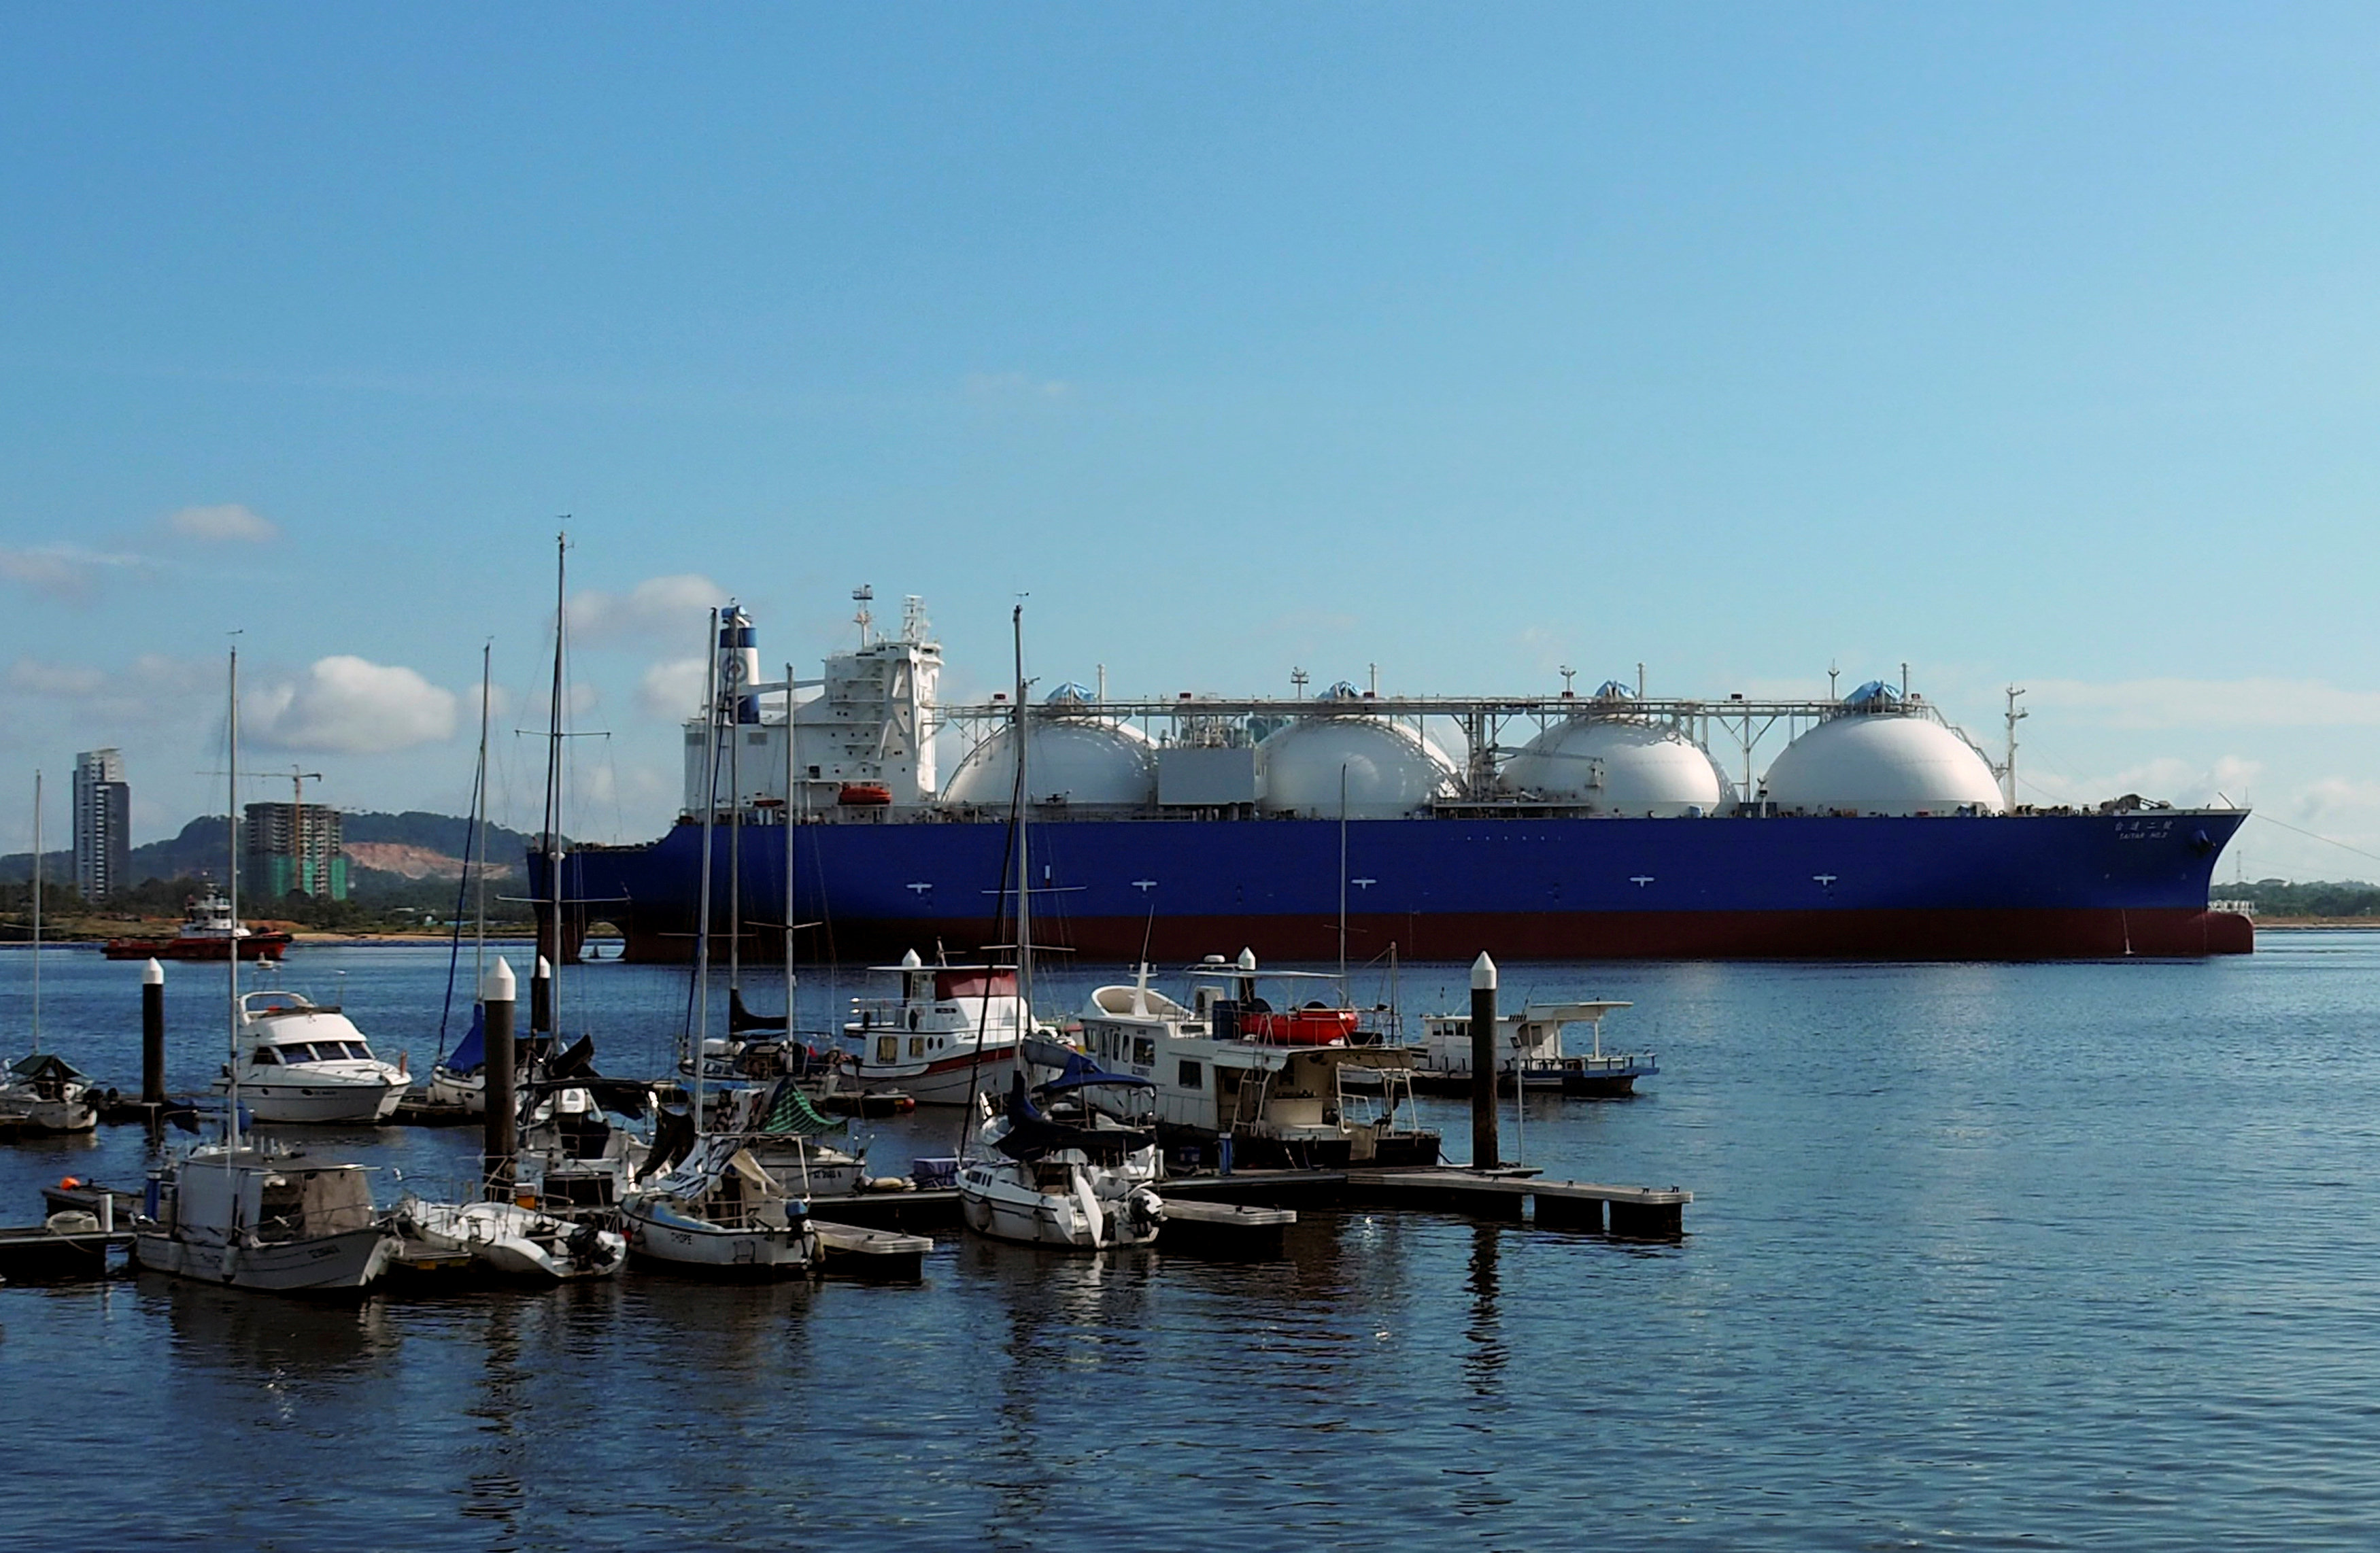 India's Petronet LNG says talks to invest in Qatar have slowed